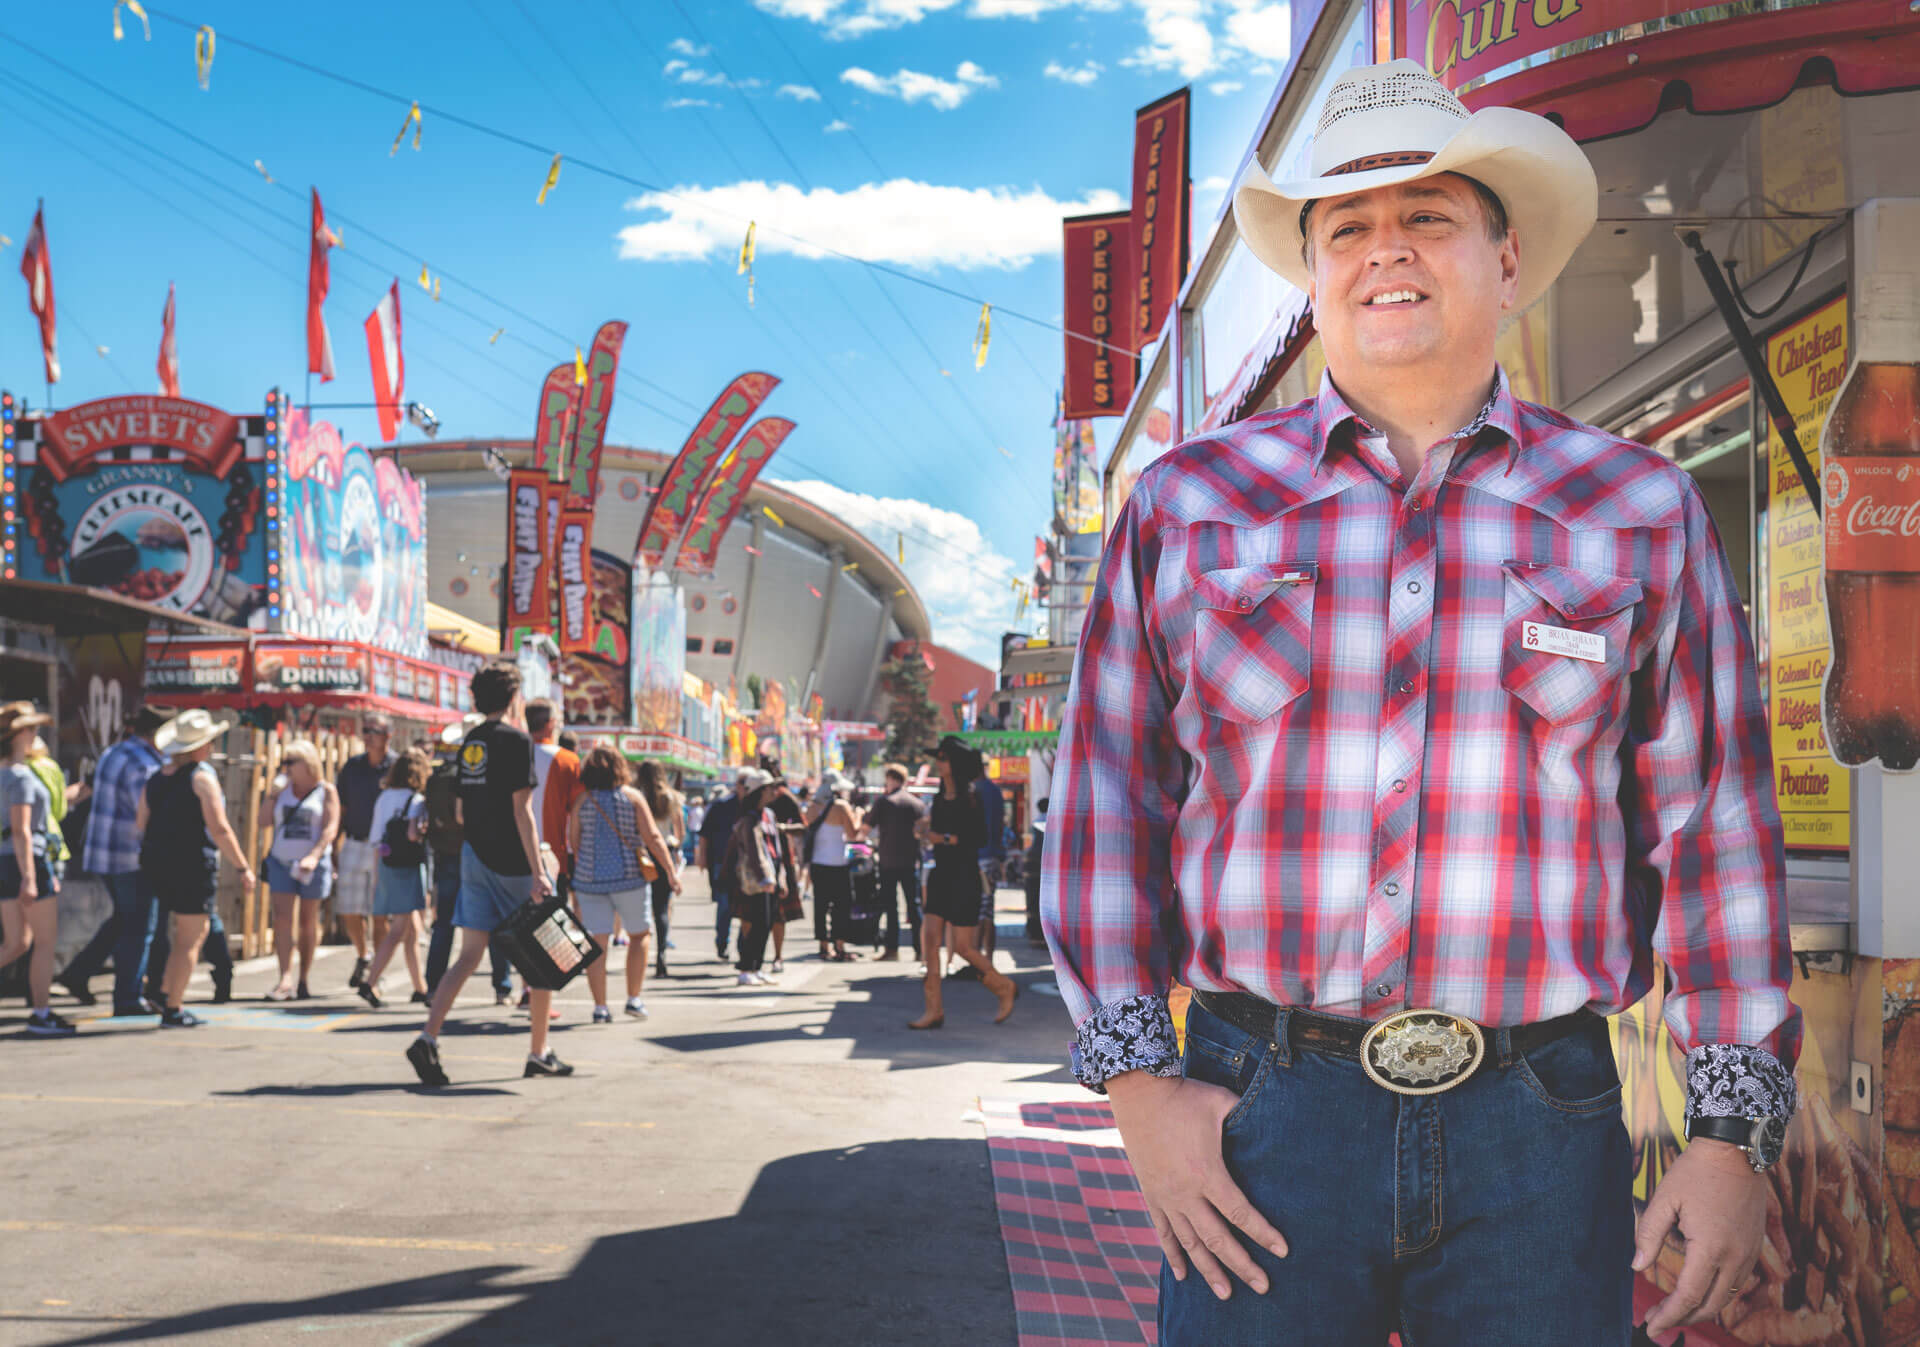 Brian deHaan is a second generation volunteer with the Calgary Stampede. (Photo credit: Trevor Lalonde)